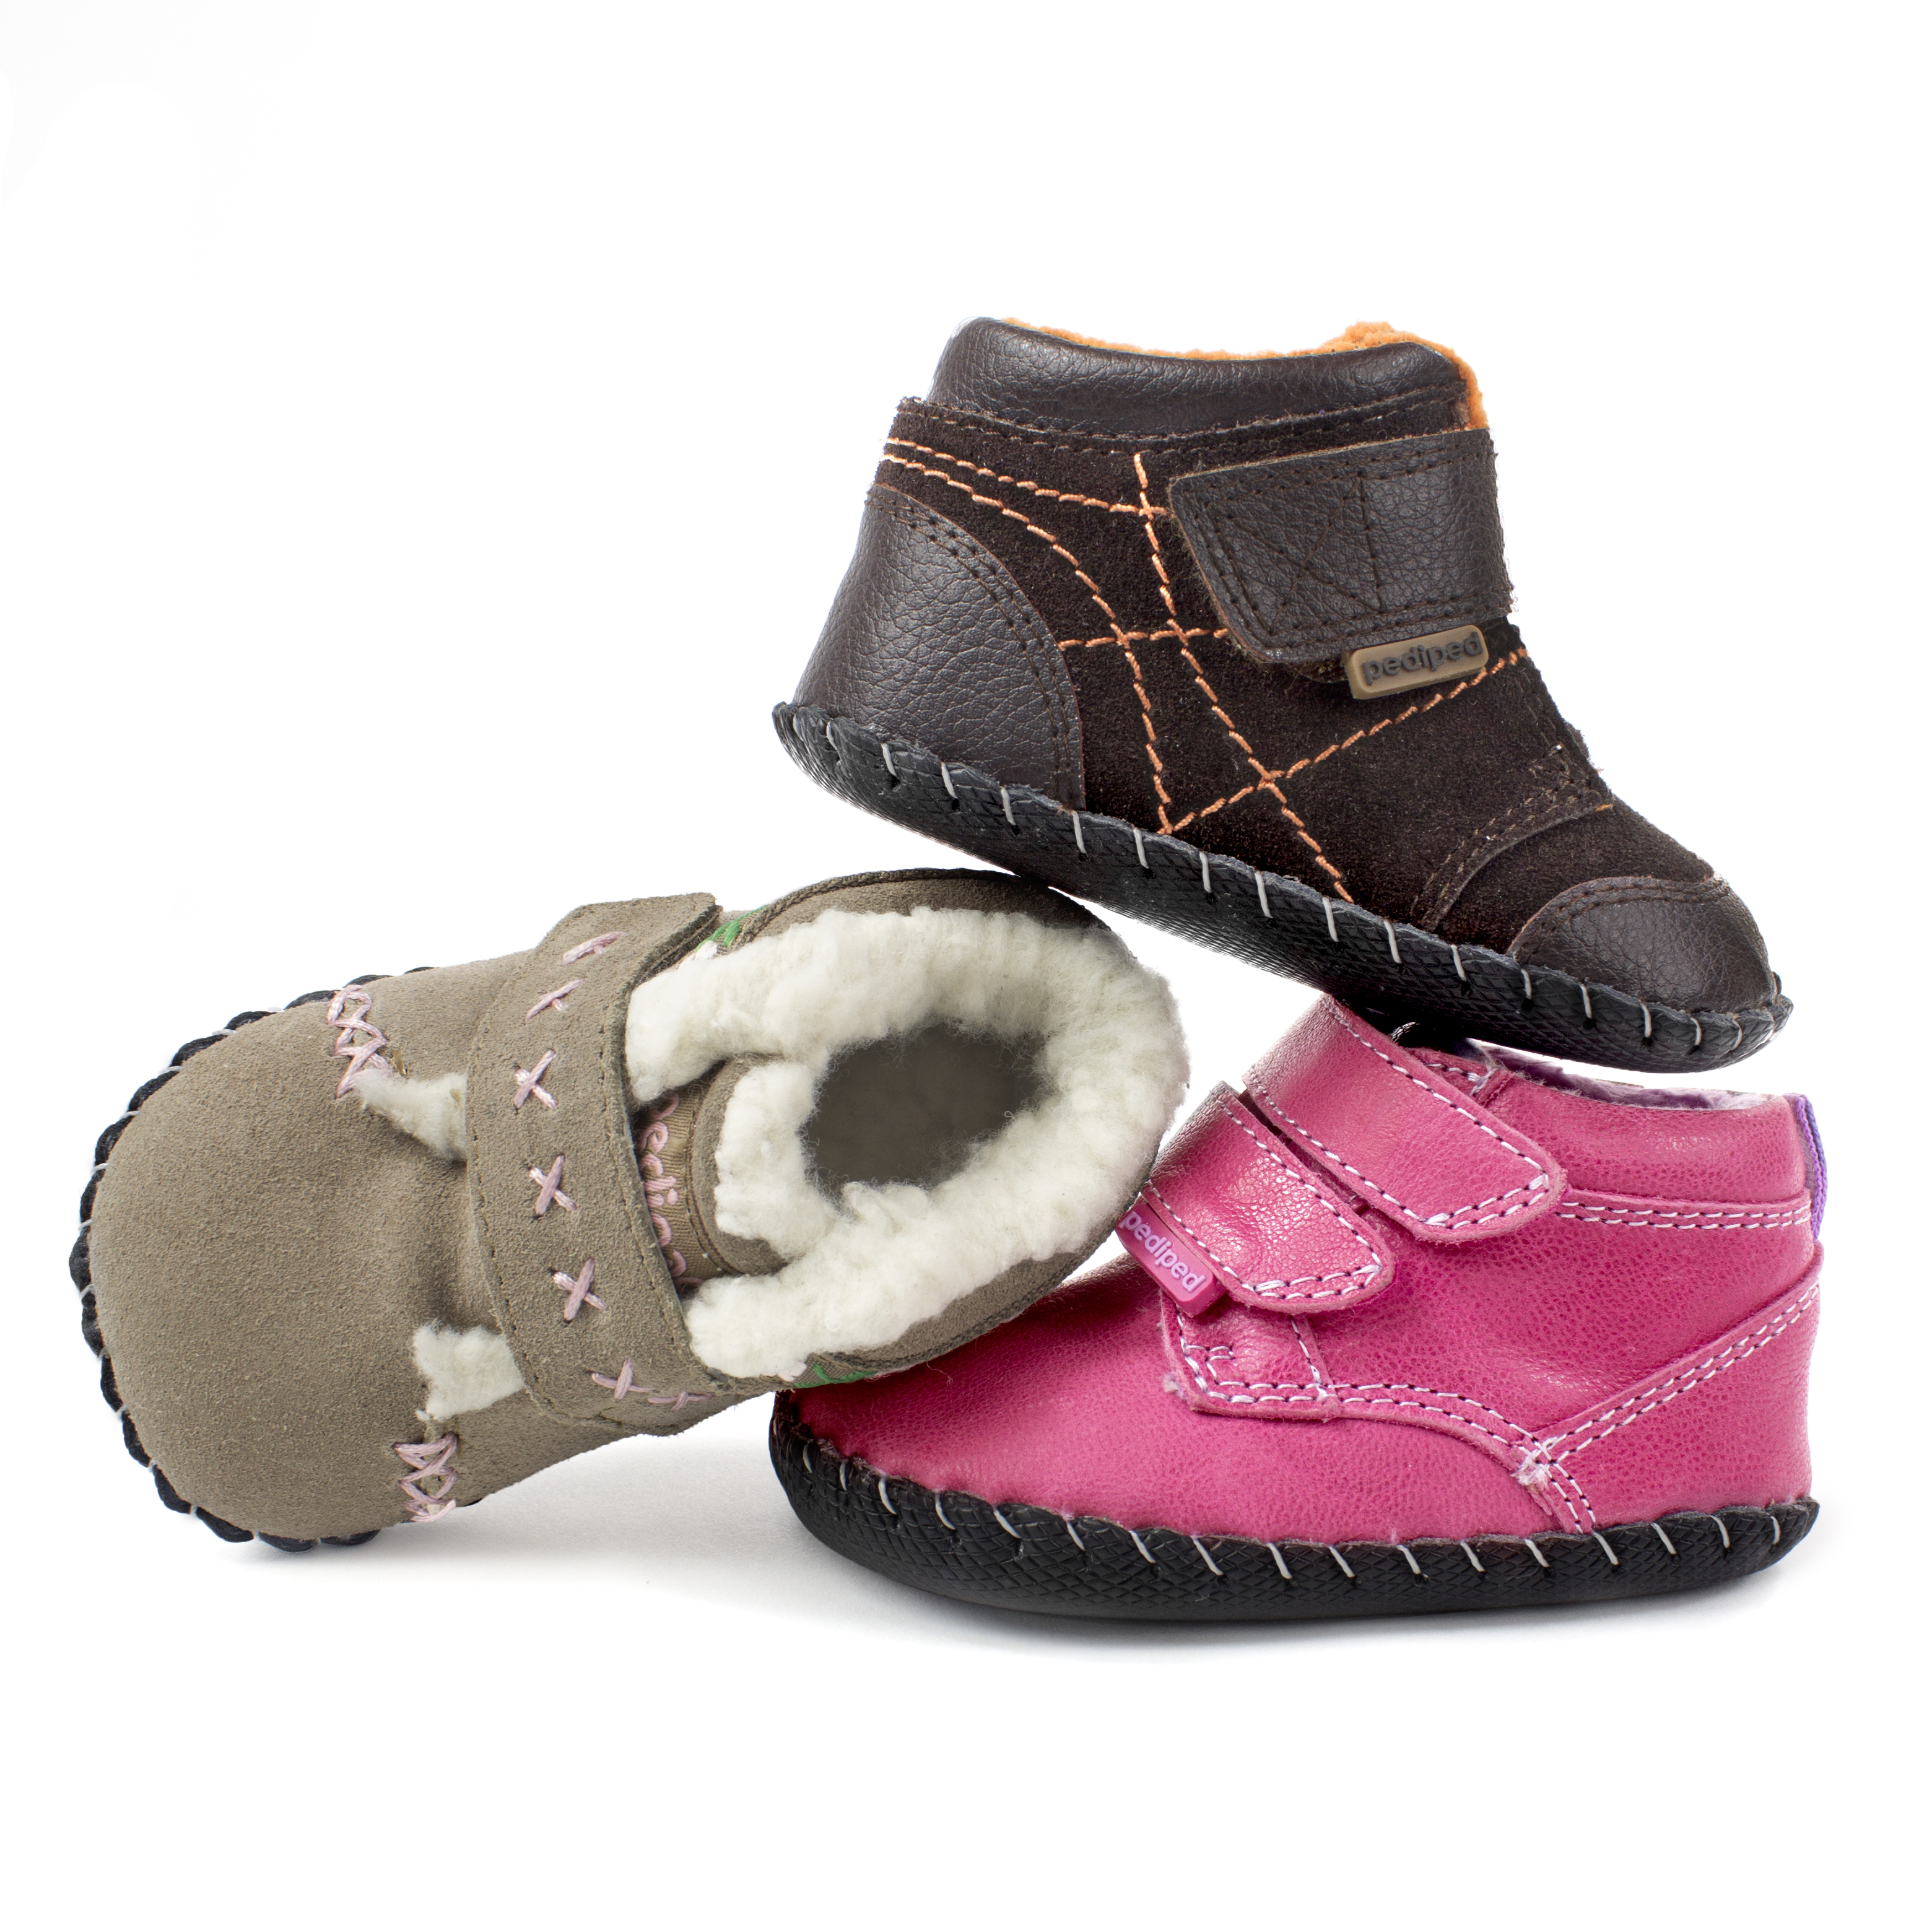 Style Guide Pediped Booties for Fall Gugu Guru Blog